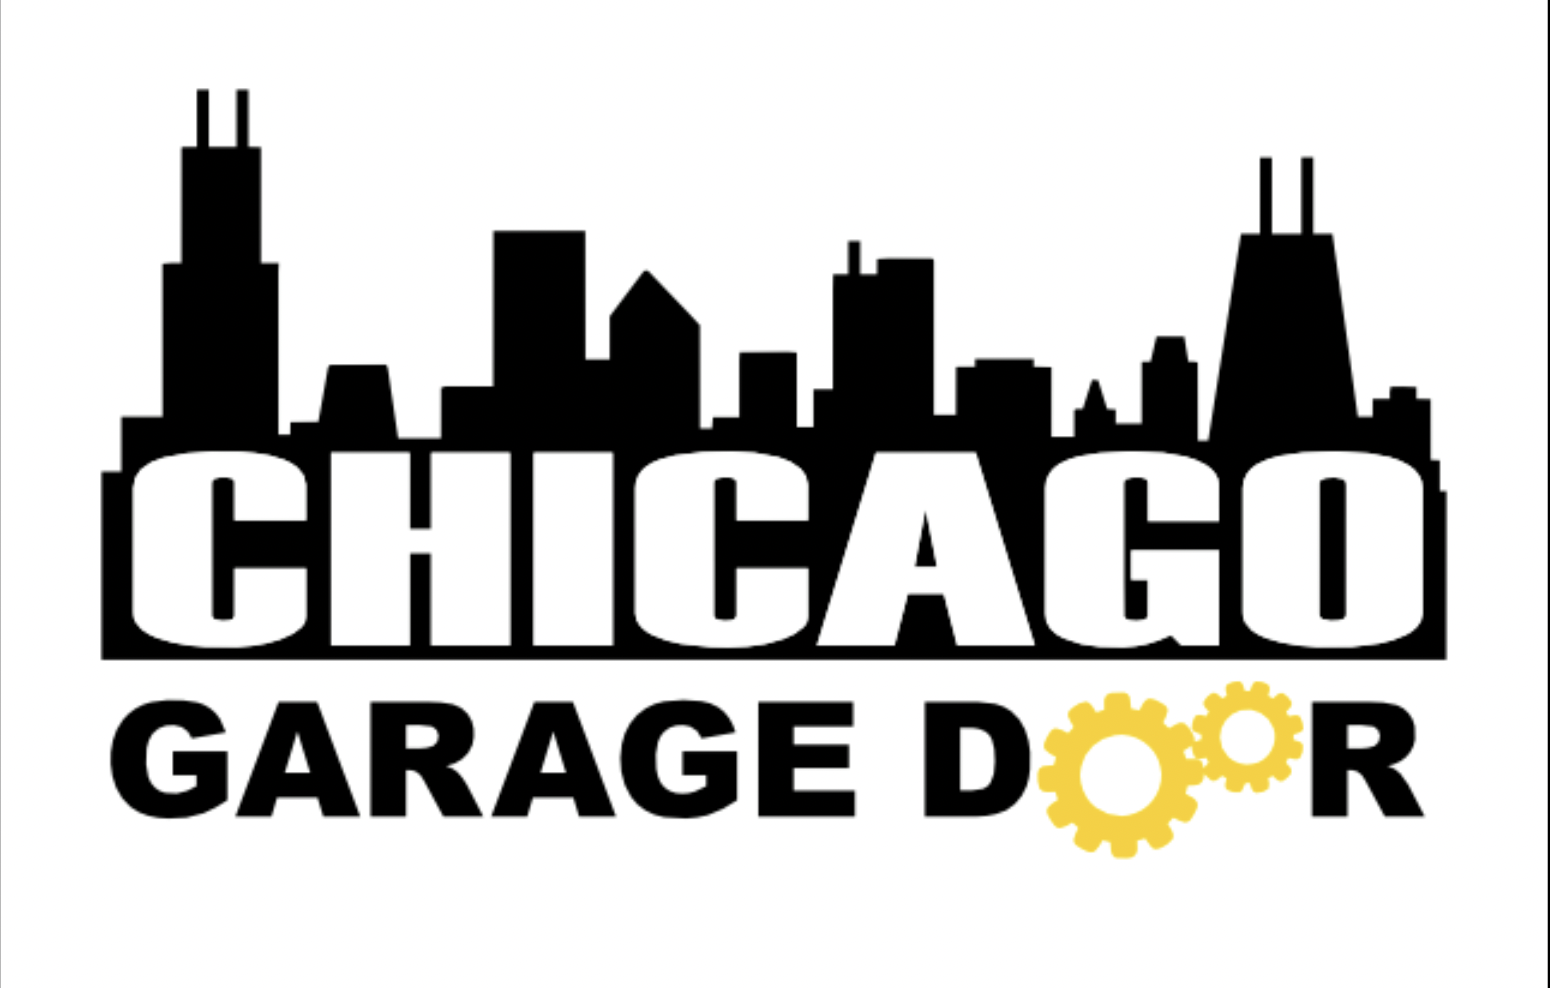 Chicago Garage Door is the Top Arlington Heights, Illinois Garage Door Expert to Call